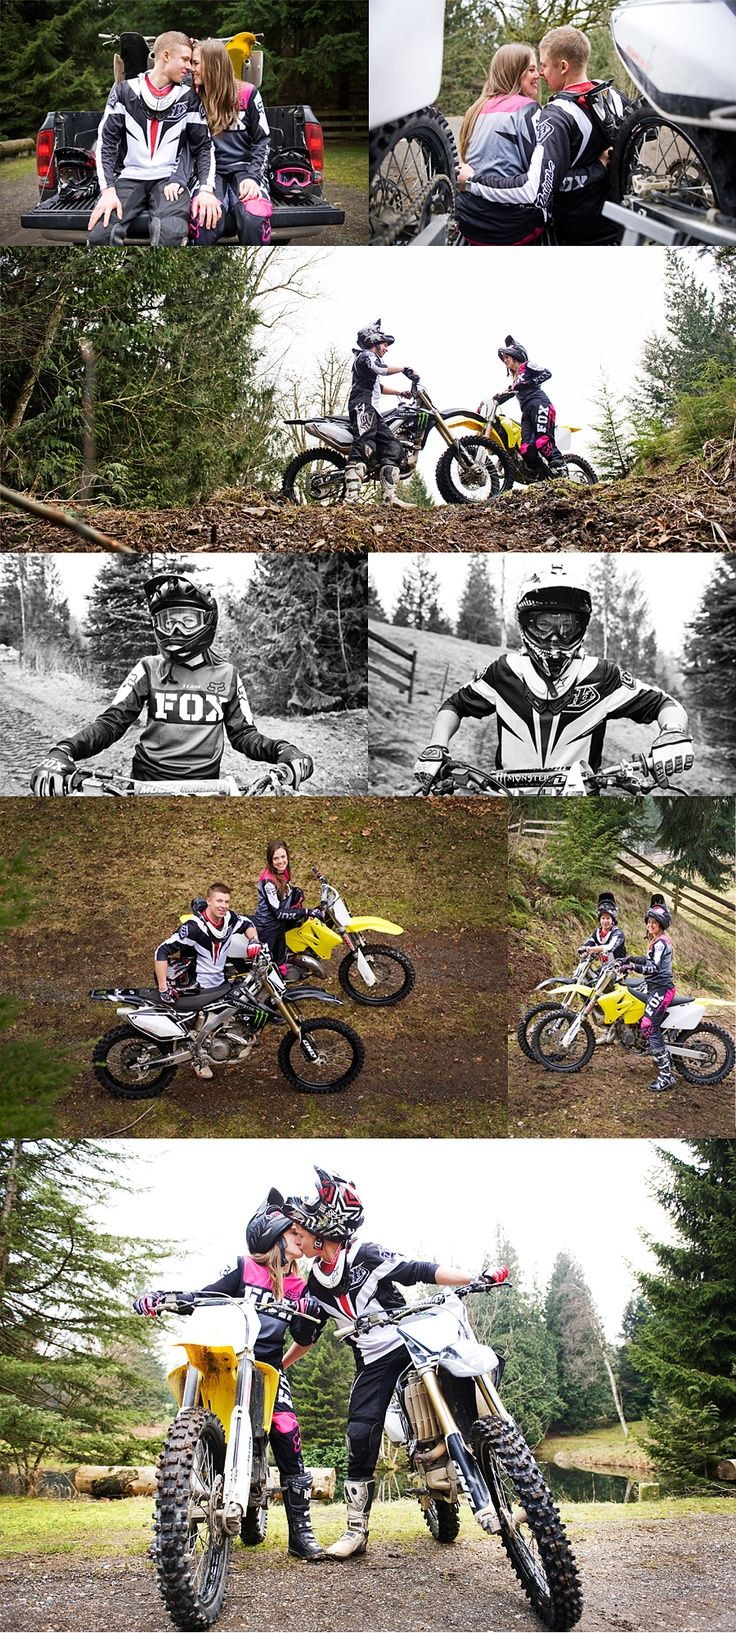 Motocross Love, I'm trying to make this happen haha but this would be awesome